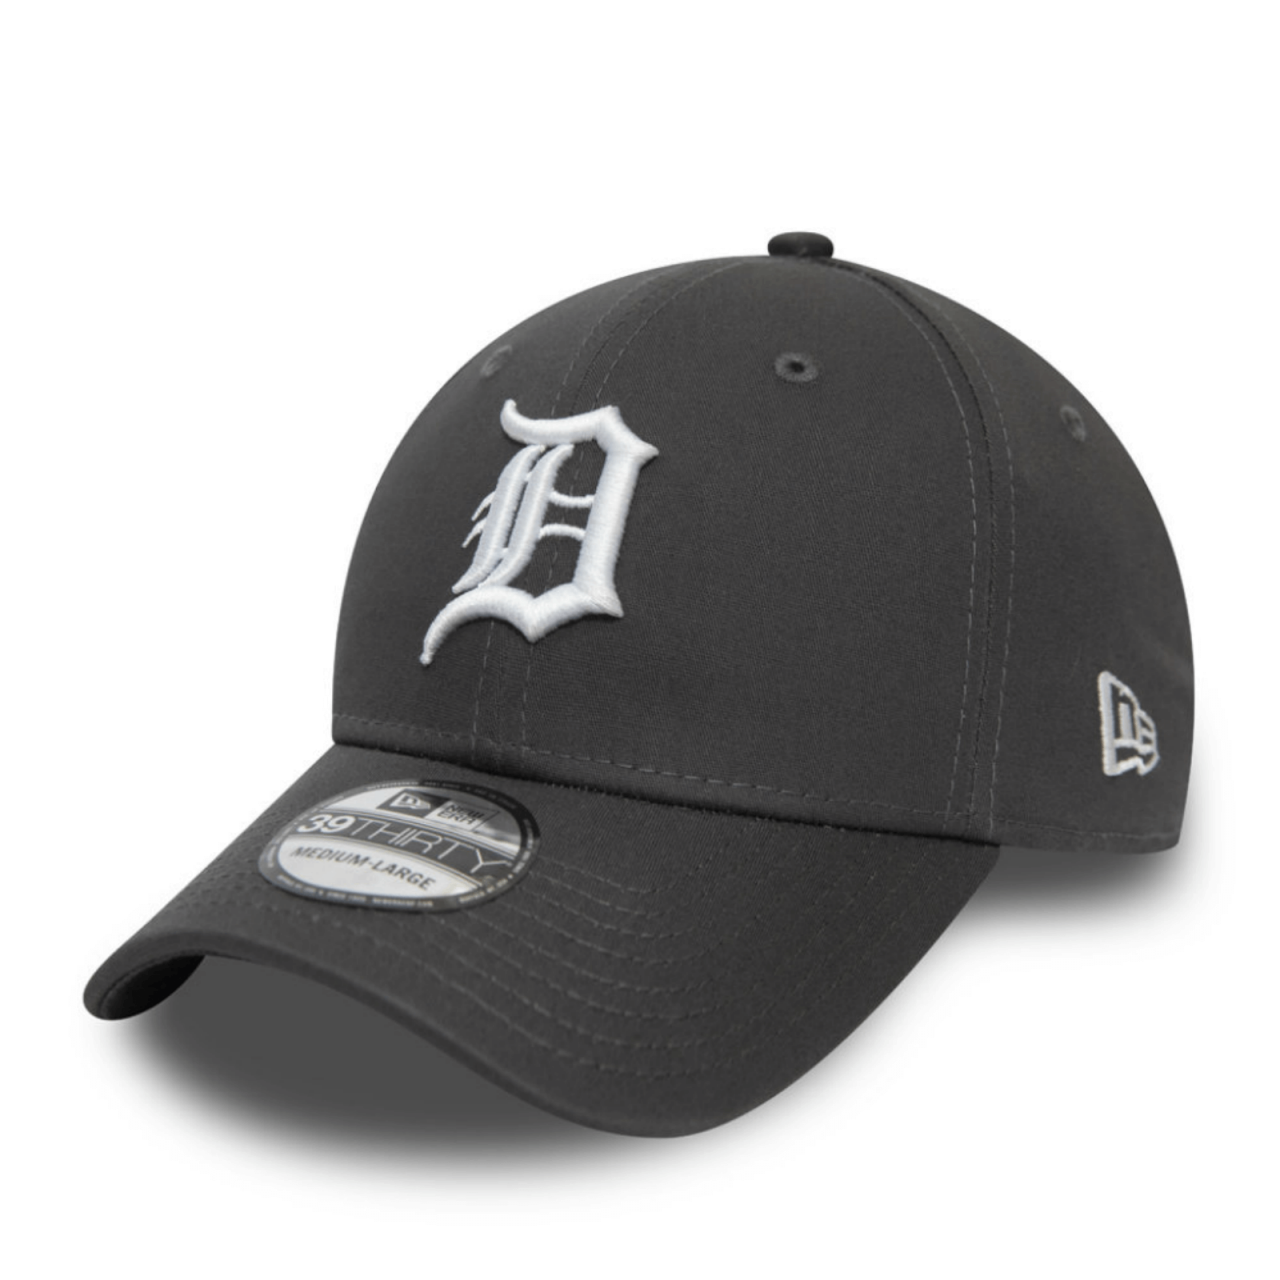 39THIRTY LEAGUE ESSENTIAL DETROIT TIGERS GREY CAP